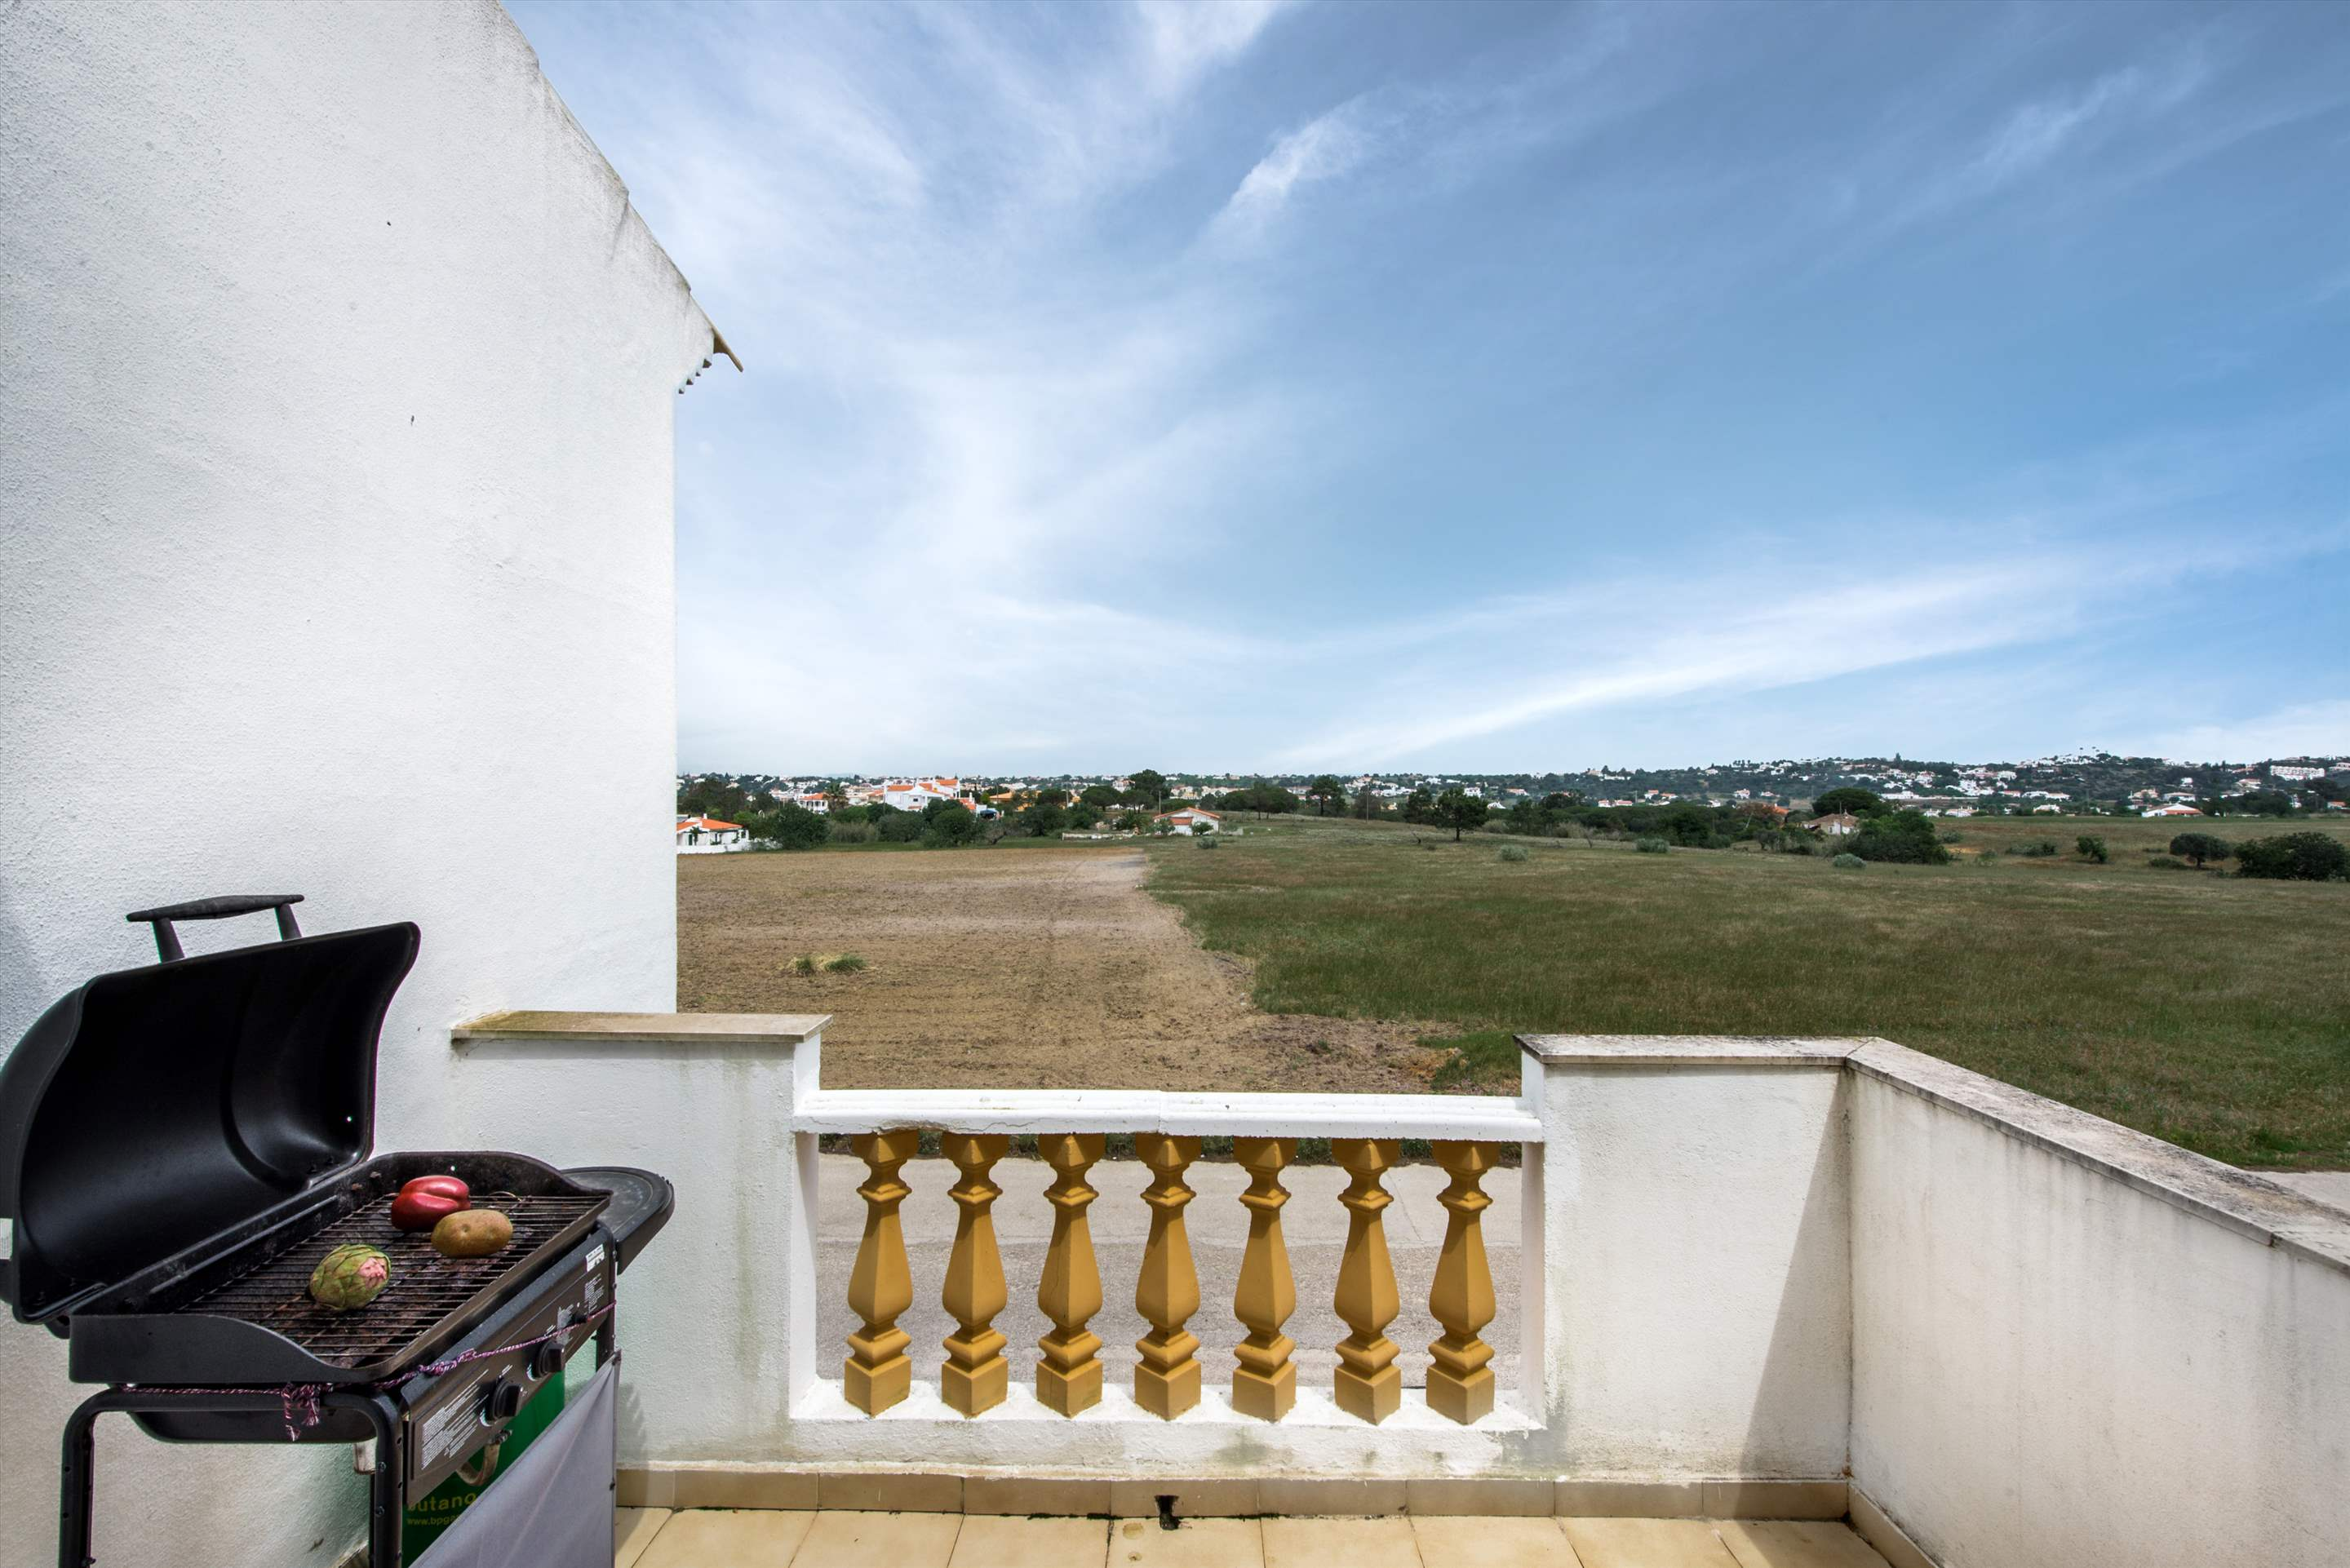 Apt O Monte, Up to 6 Persons, 3 bedroom apartment in Gale, Vale da Parra and Guia, Algarve Photo #14